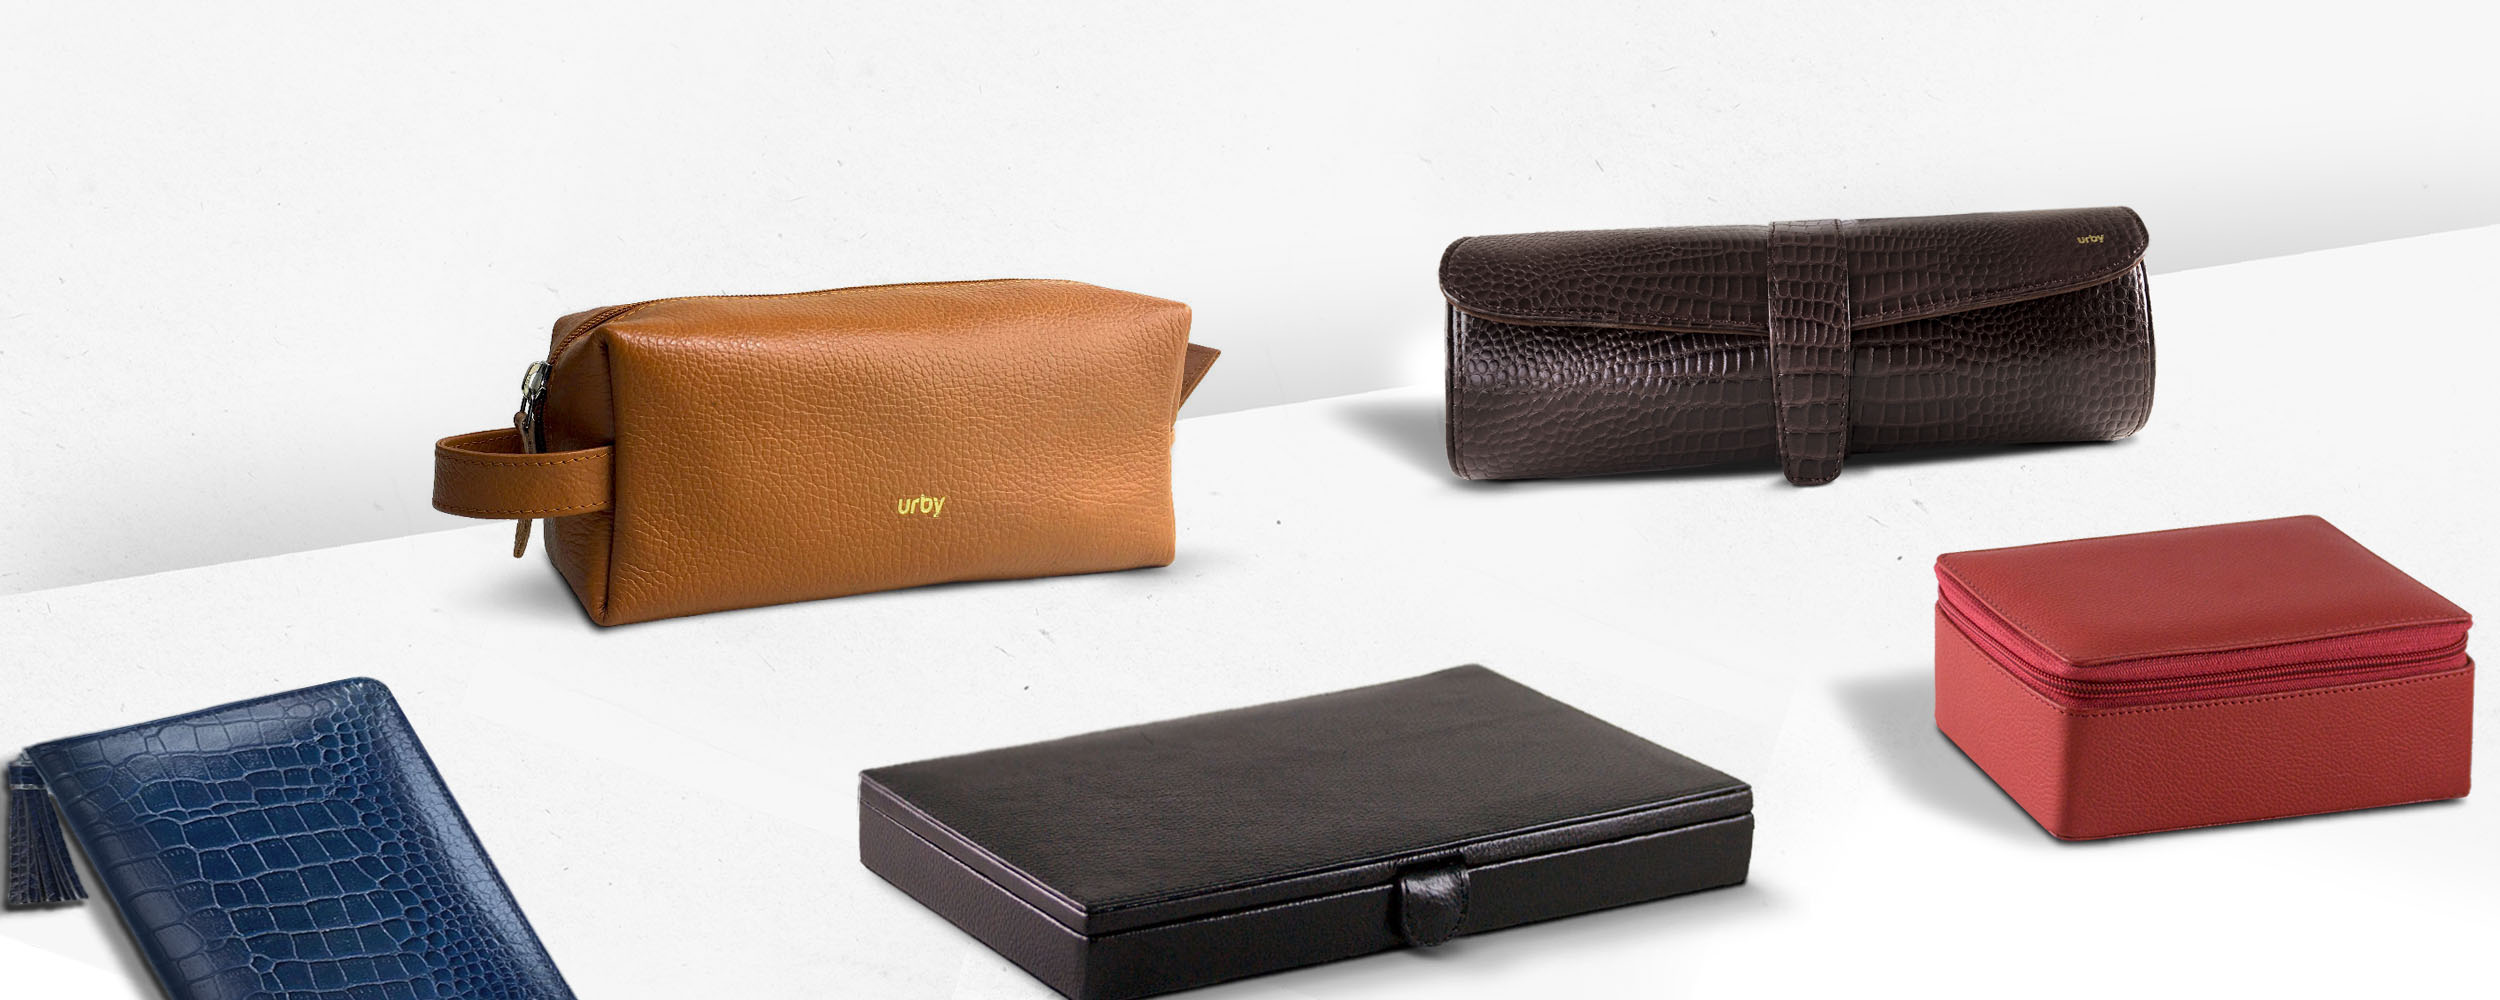 Urby_travel wallet